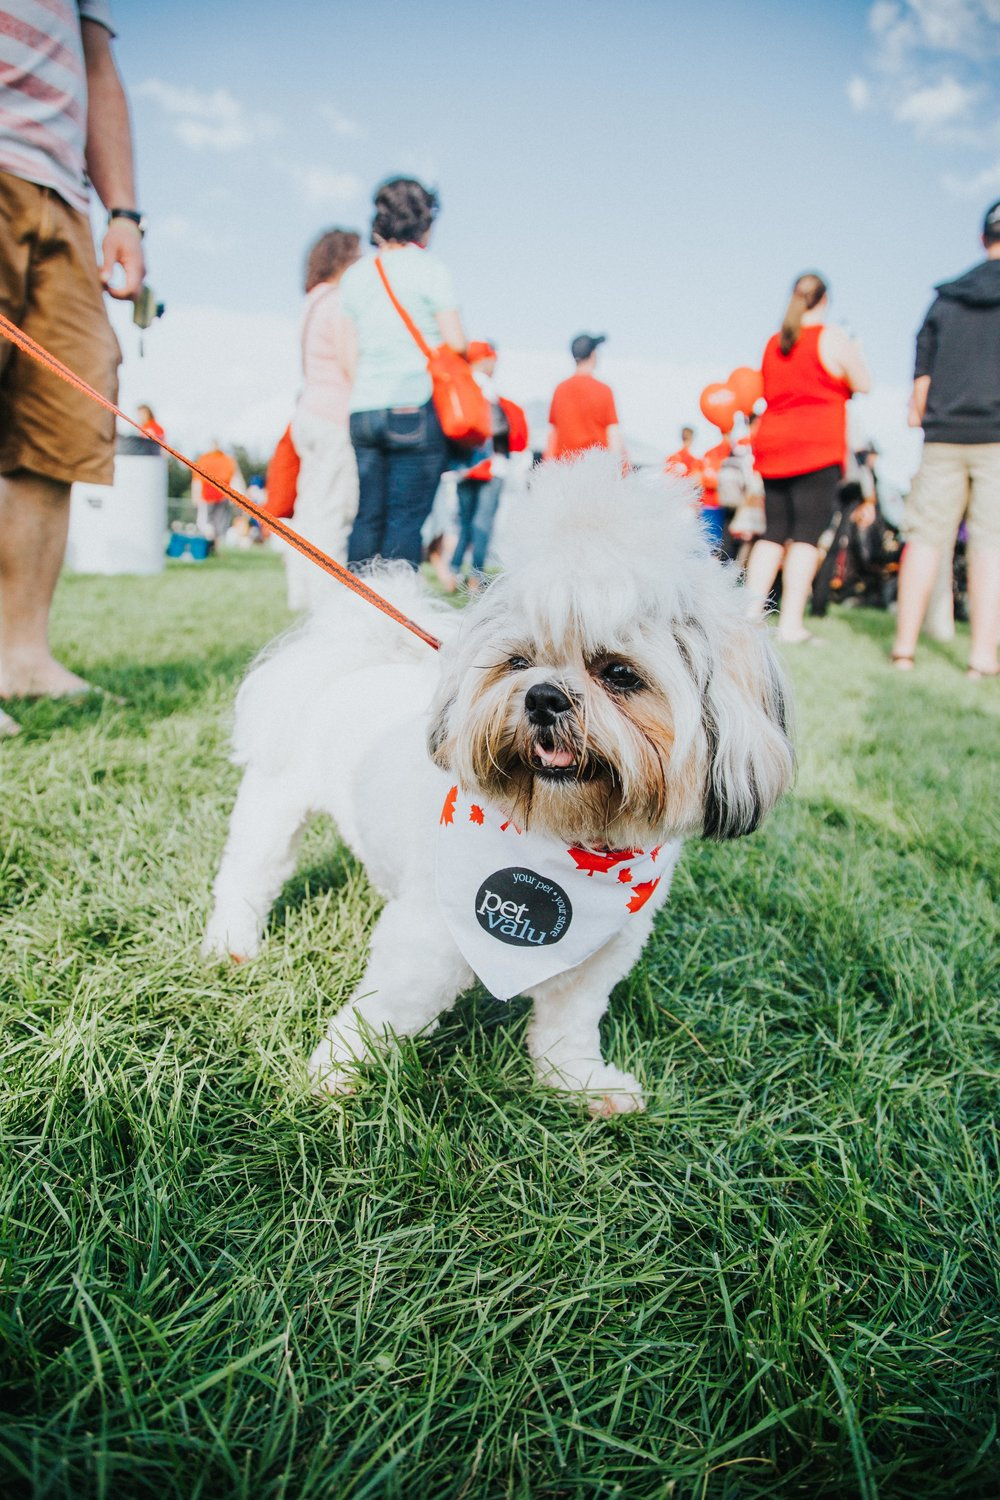 Even the Cambridge pets show off their patriotism at the Riverside Canada Day festival.